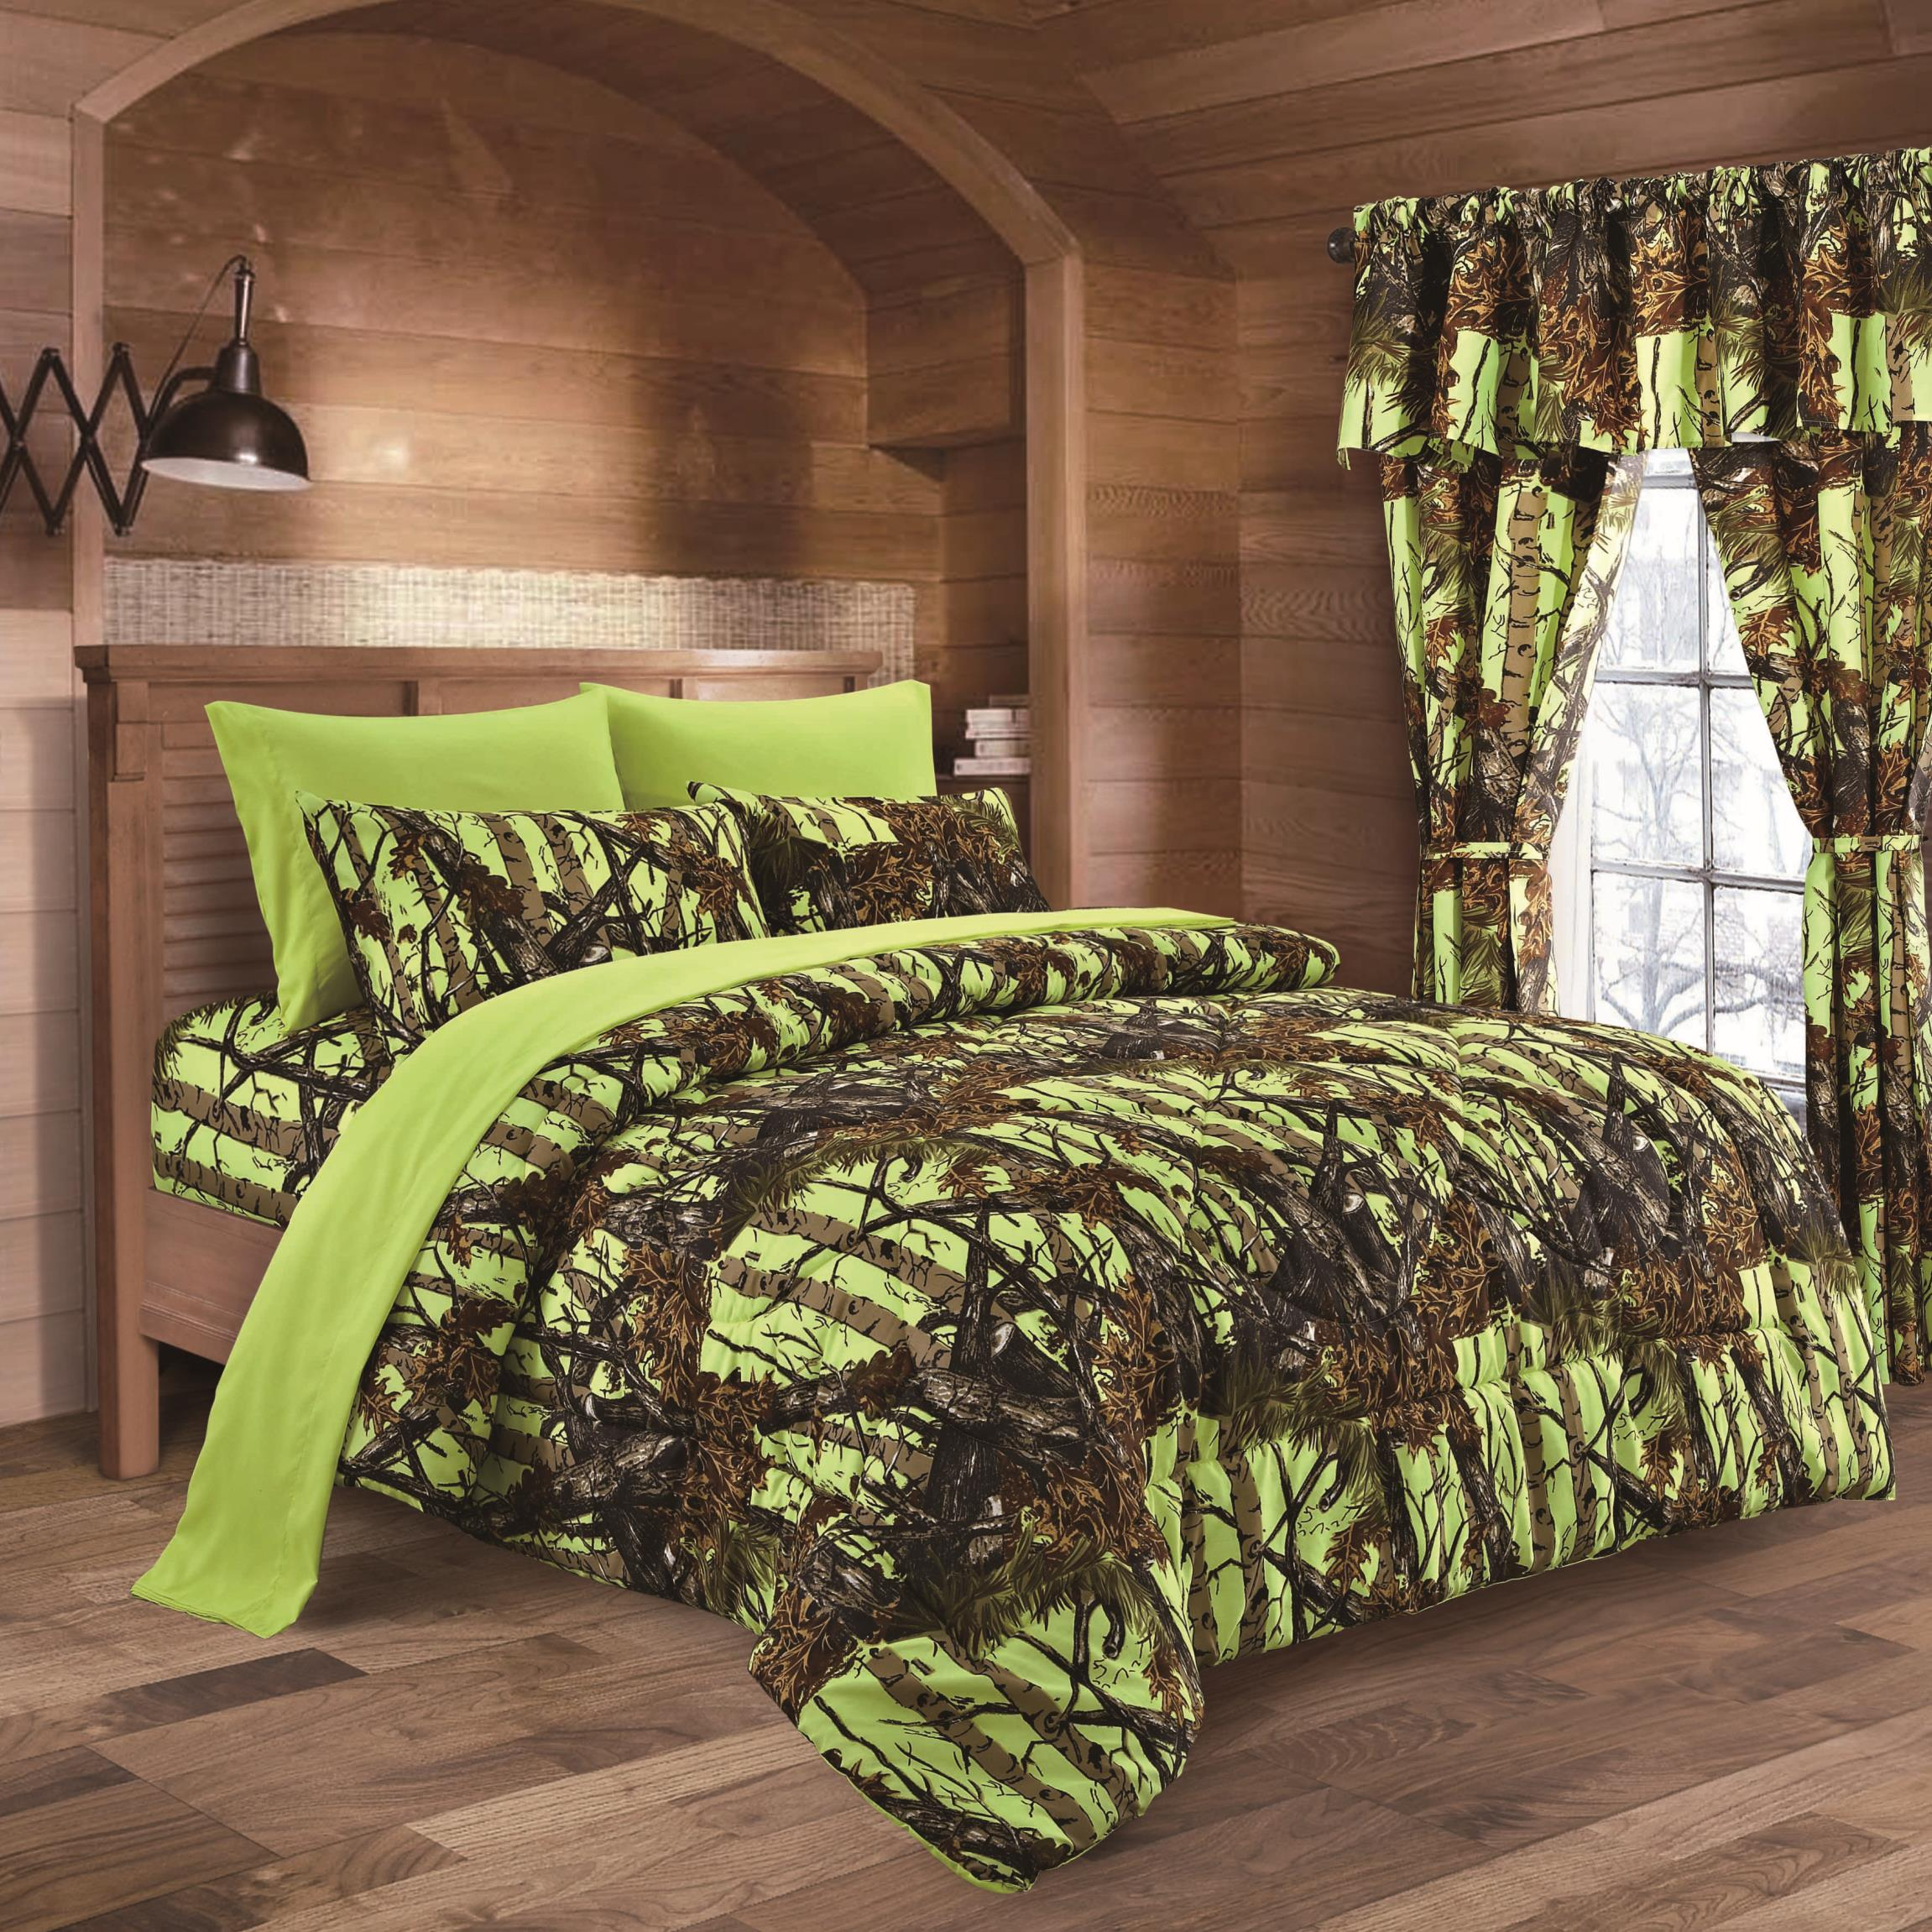 brandee danielle african plains bedding  bedding queen - brandee danielle african plains  piece crib bedding set com